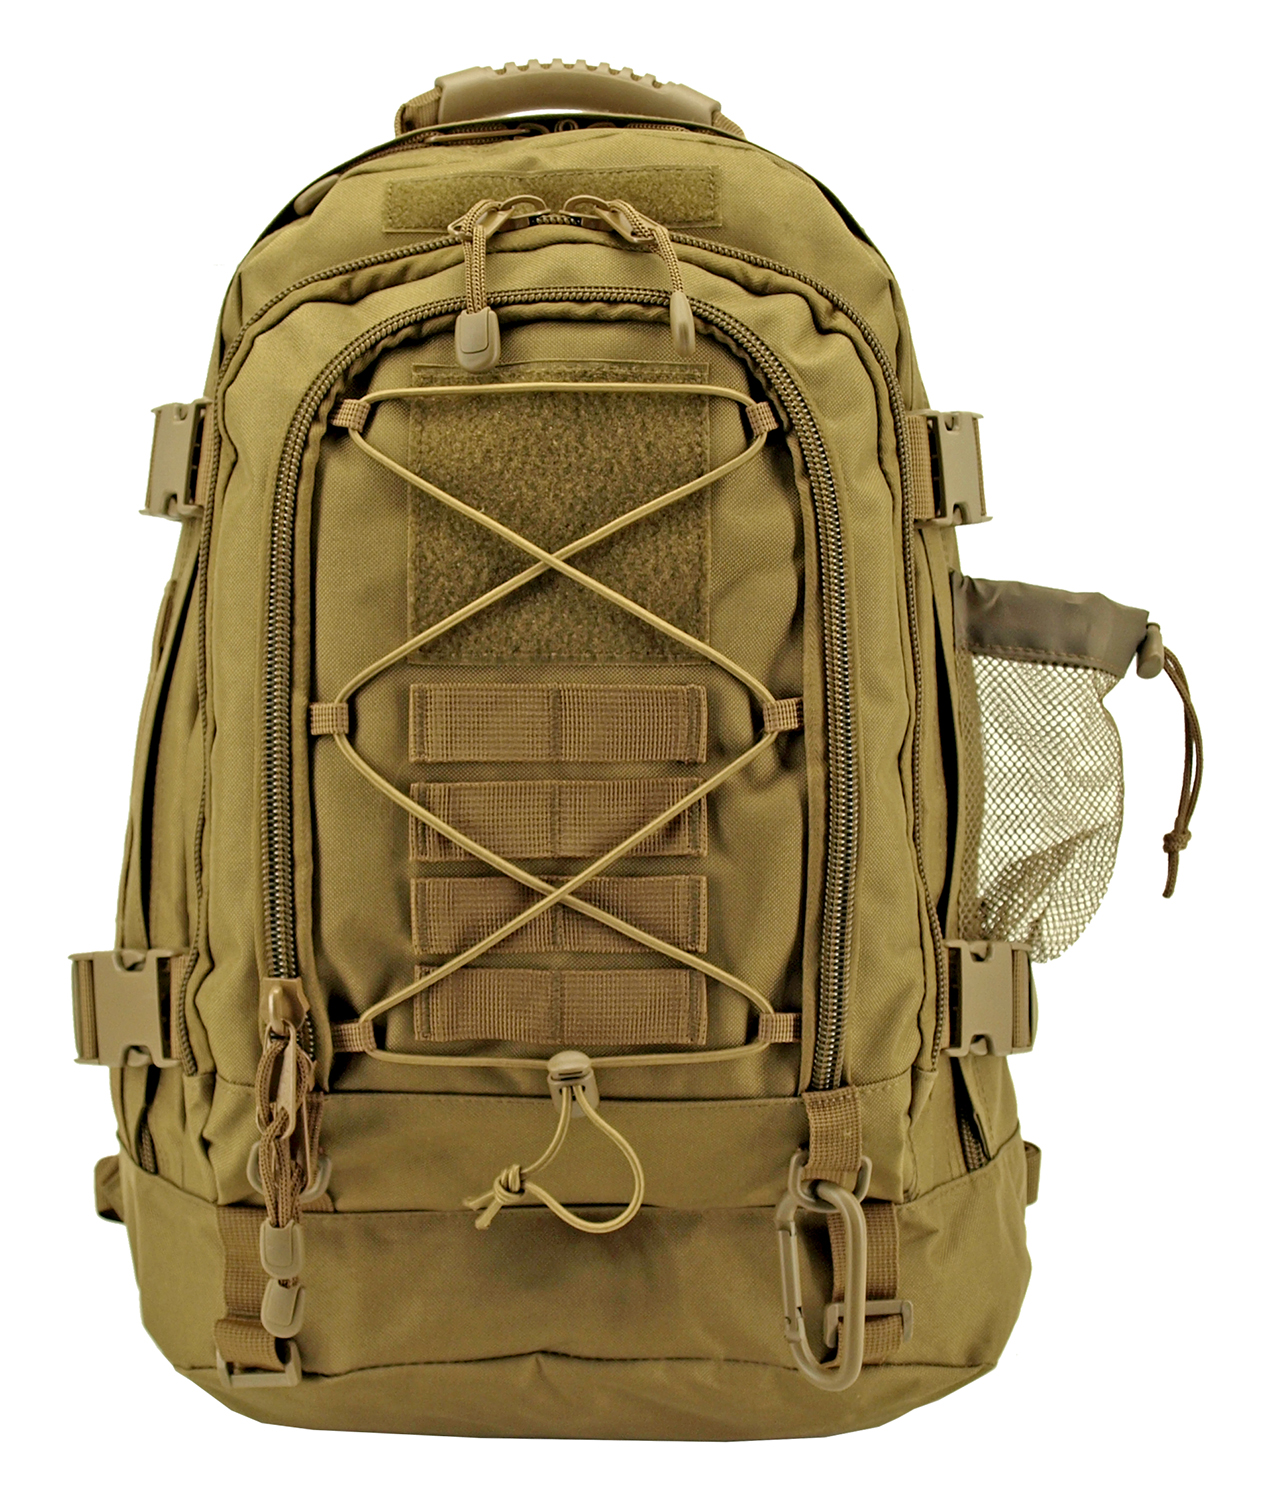 Expandable Tactical Elite Backpack - Desert Tan